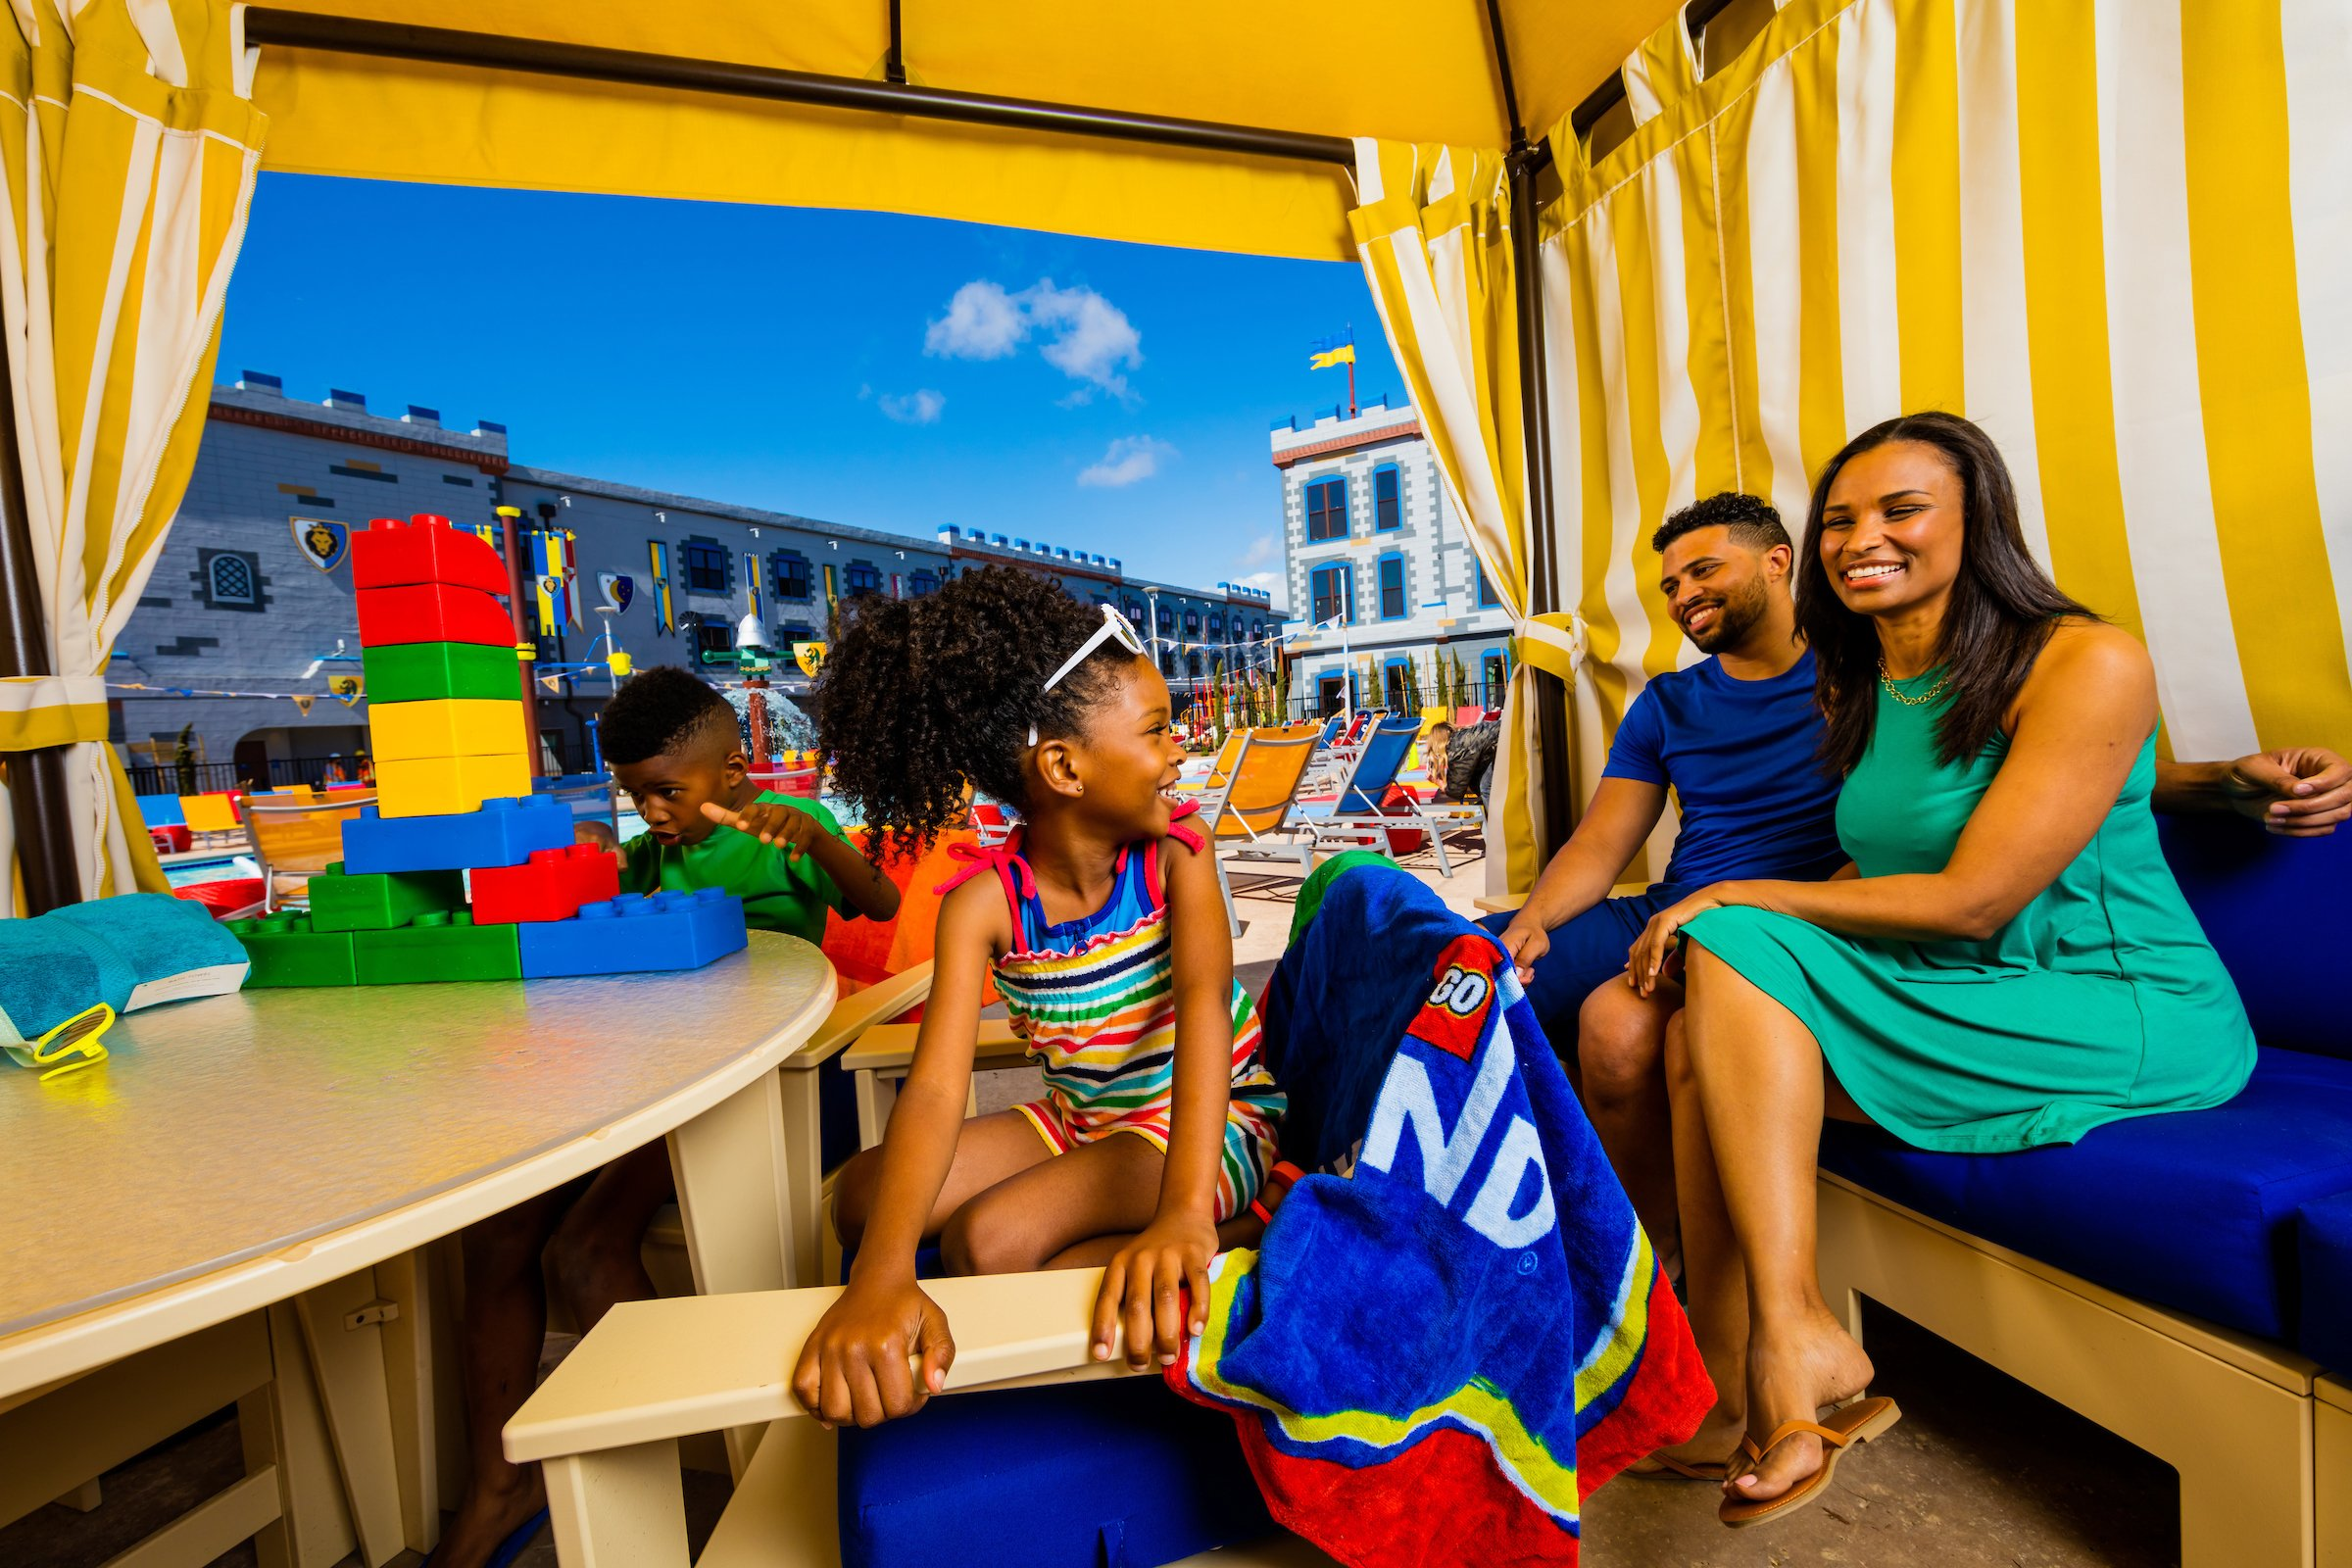 A family gathers in a cabana near the swimming pool at LEGOLAND Castle Hotel.